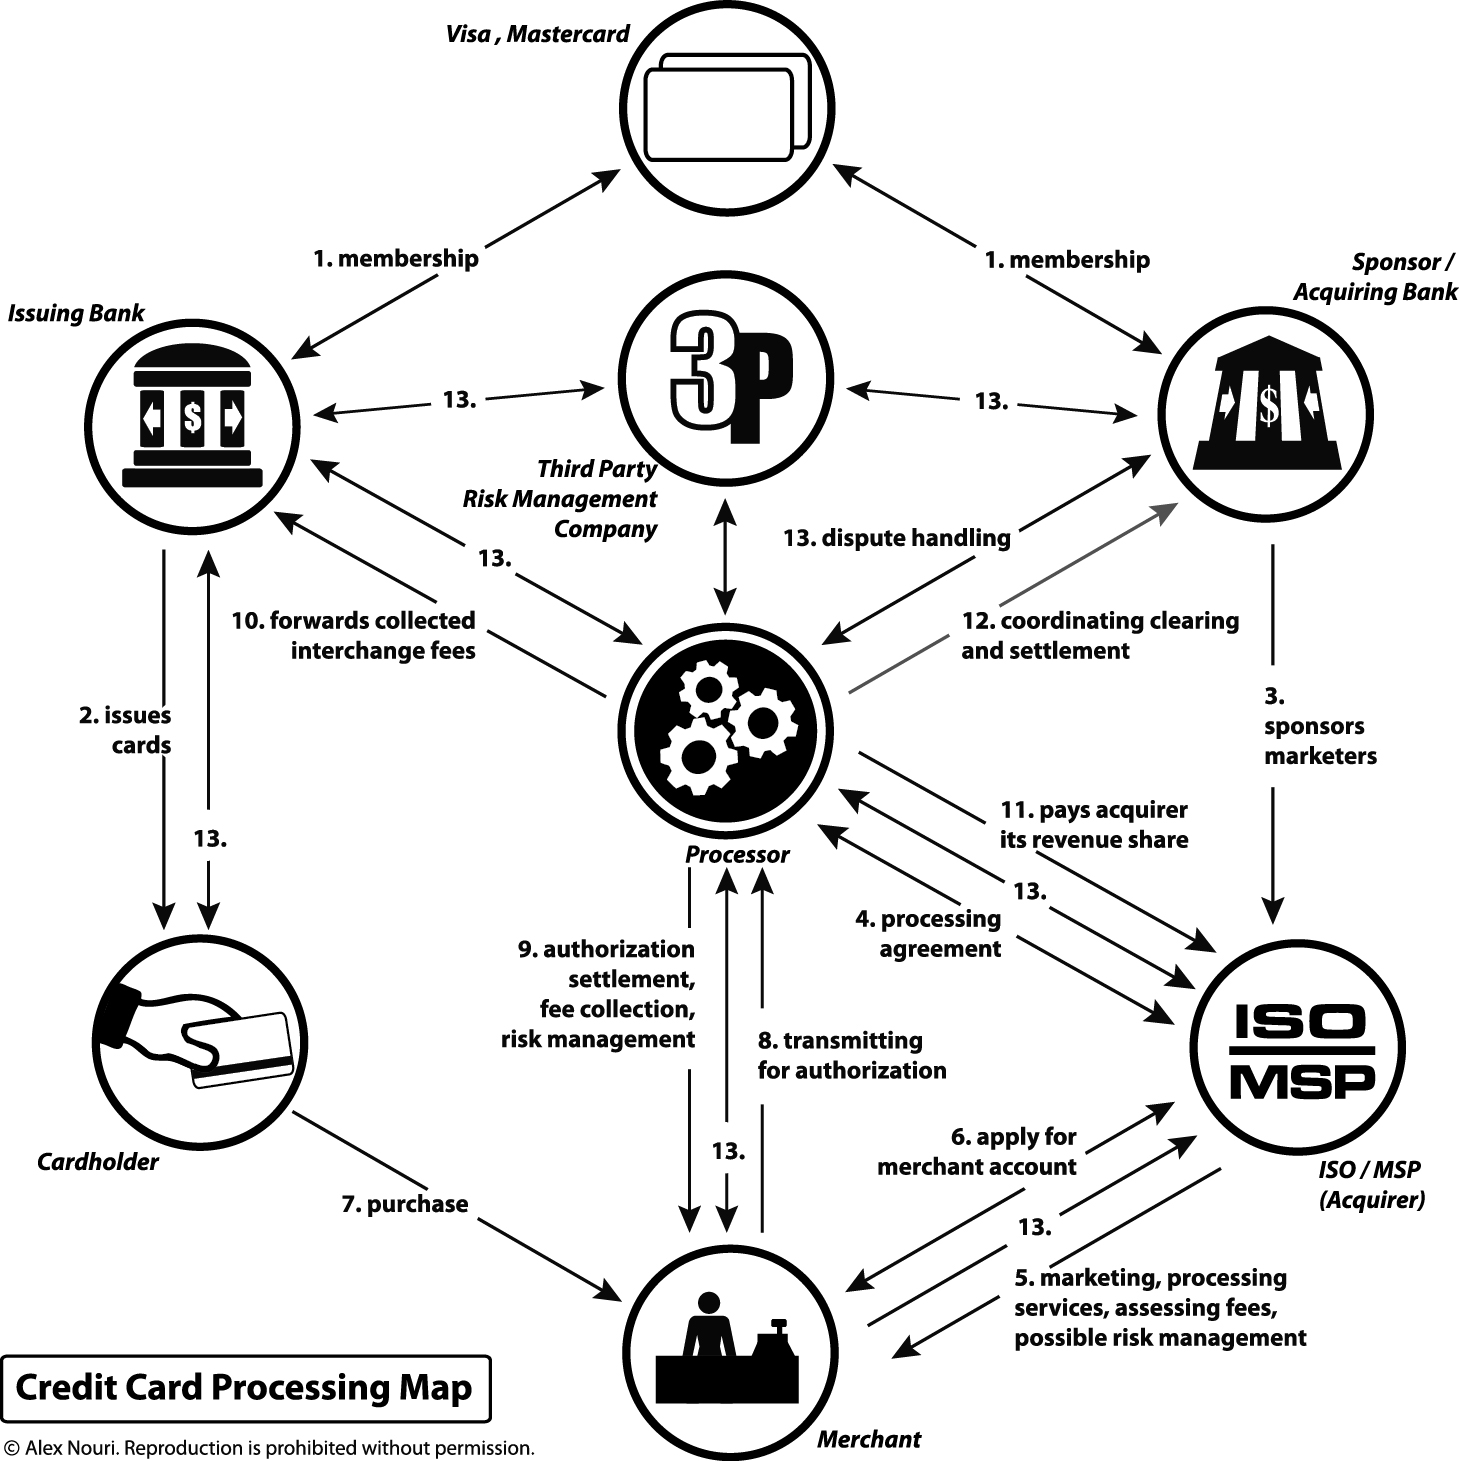 credit card processing map by alex nouri